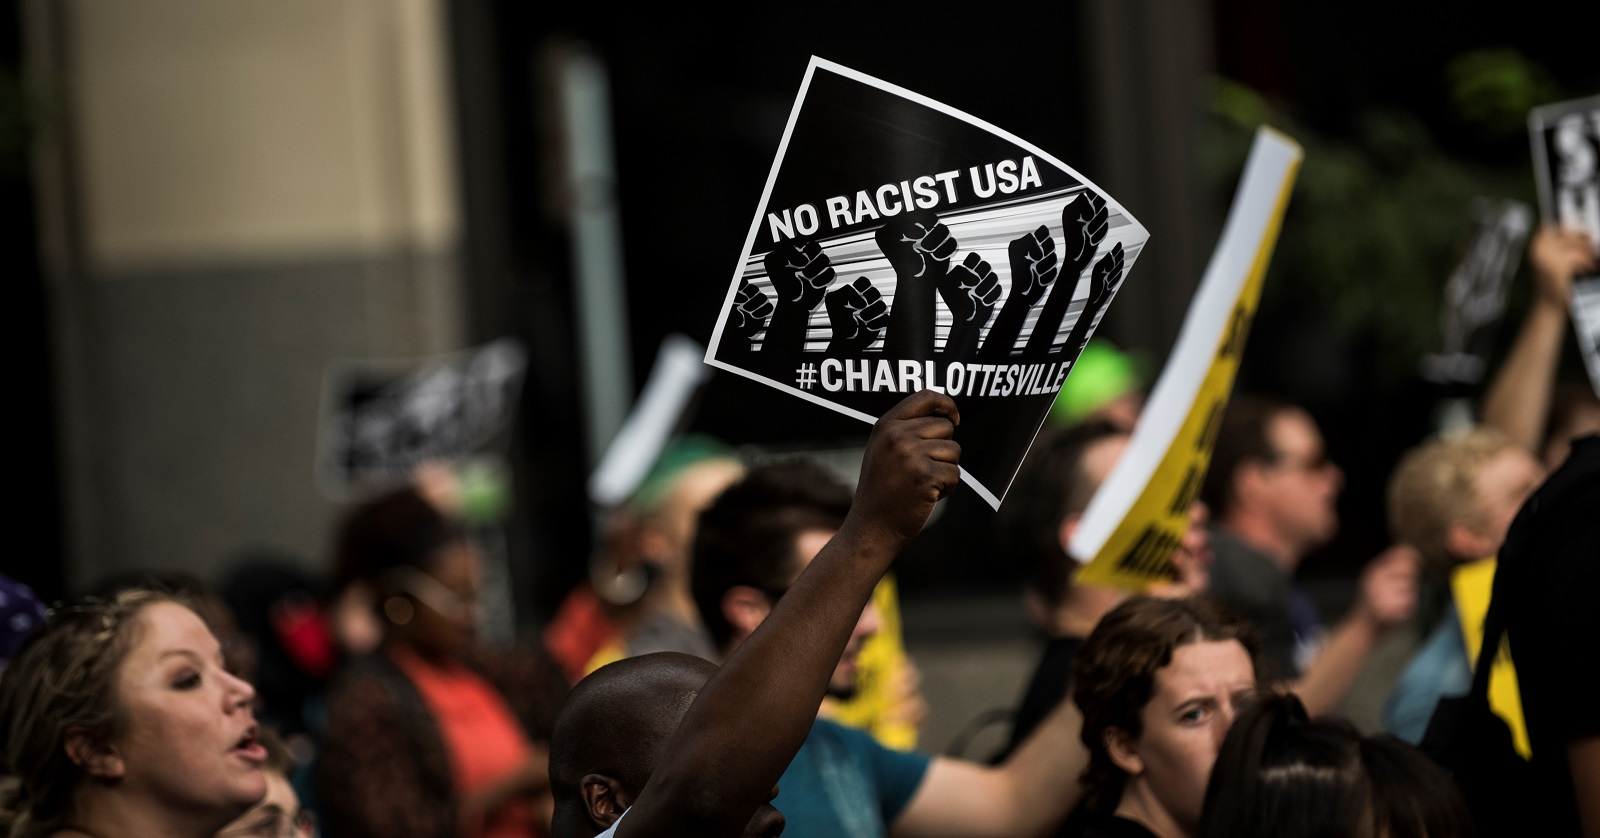 A protest in Minneapolis, Minnesota against racism and the violence in Charlottesville, Virginia. (Photo: Stephen Maturen/Getty Images)